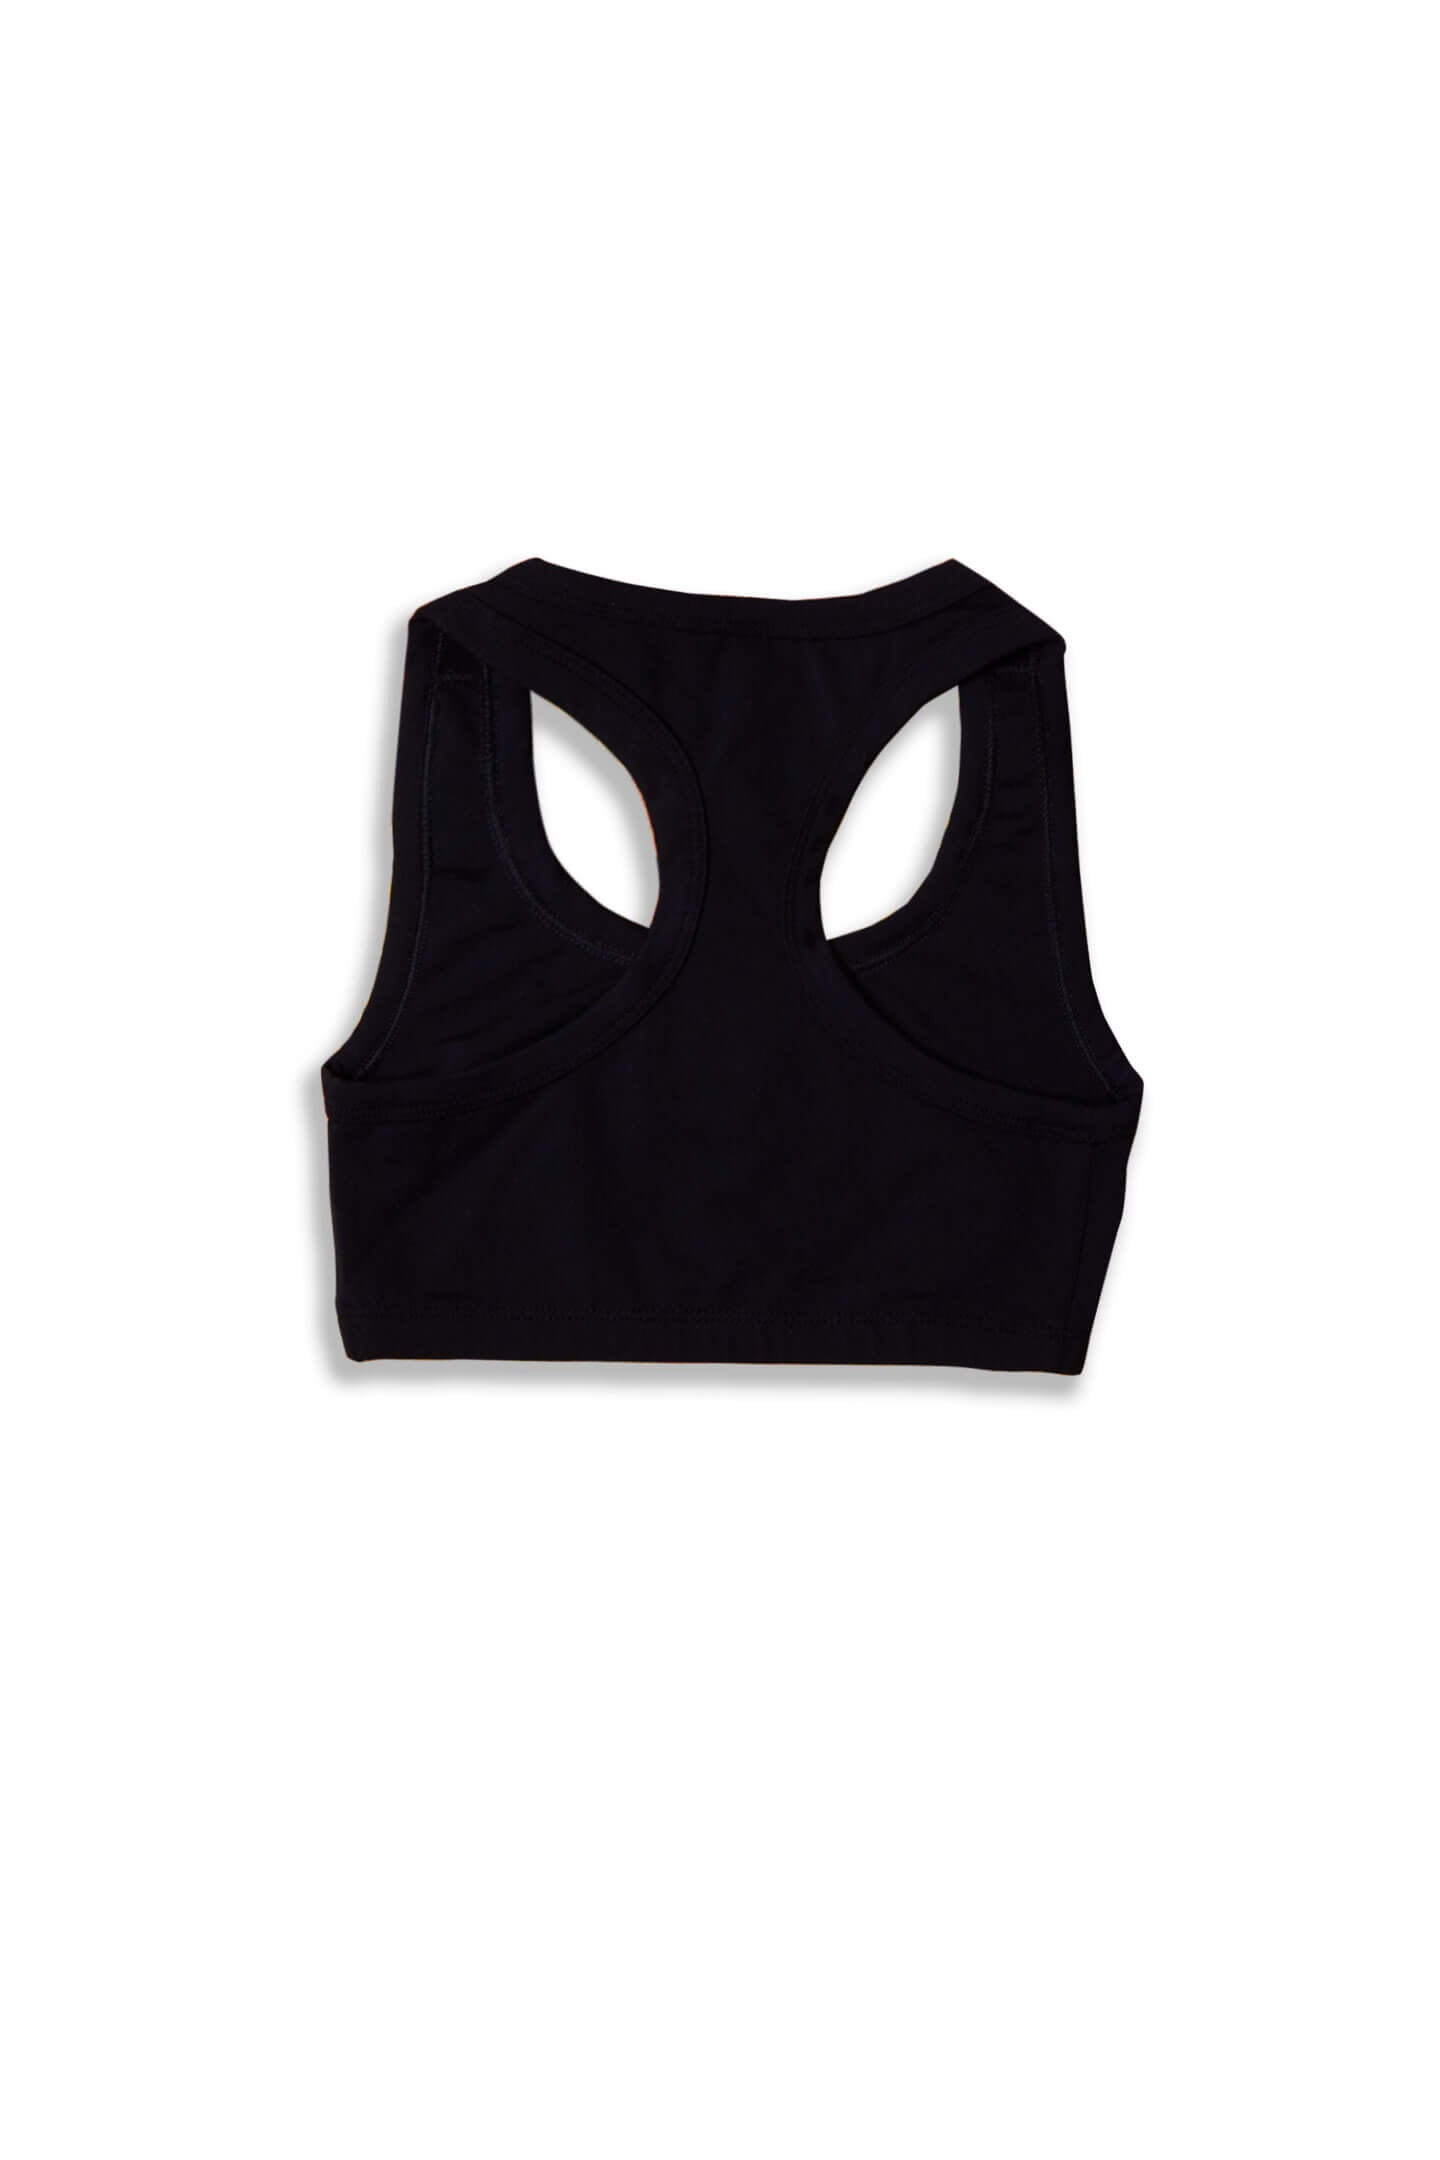 NO PRINCE CHARMING SPORTS BRA - BLACK